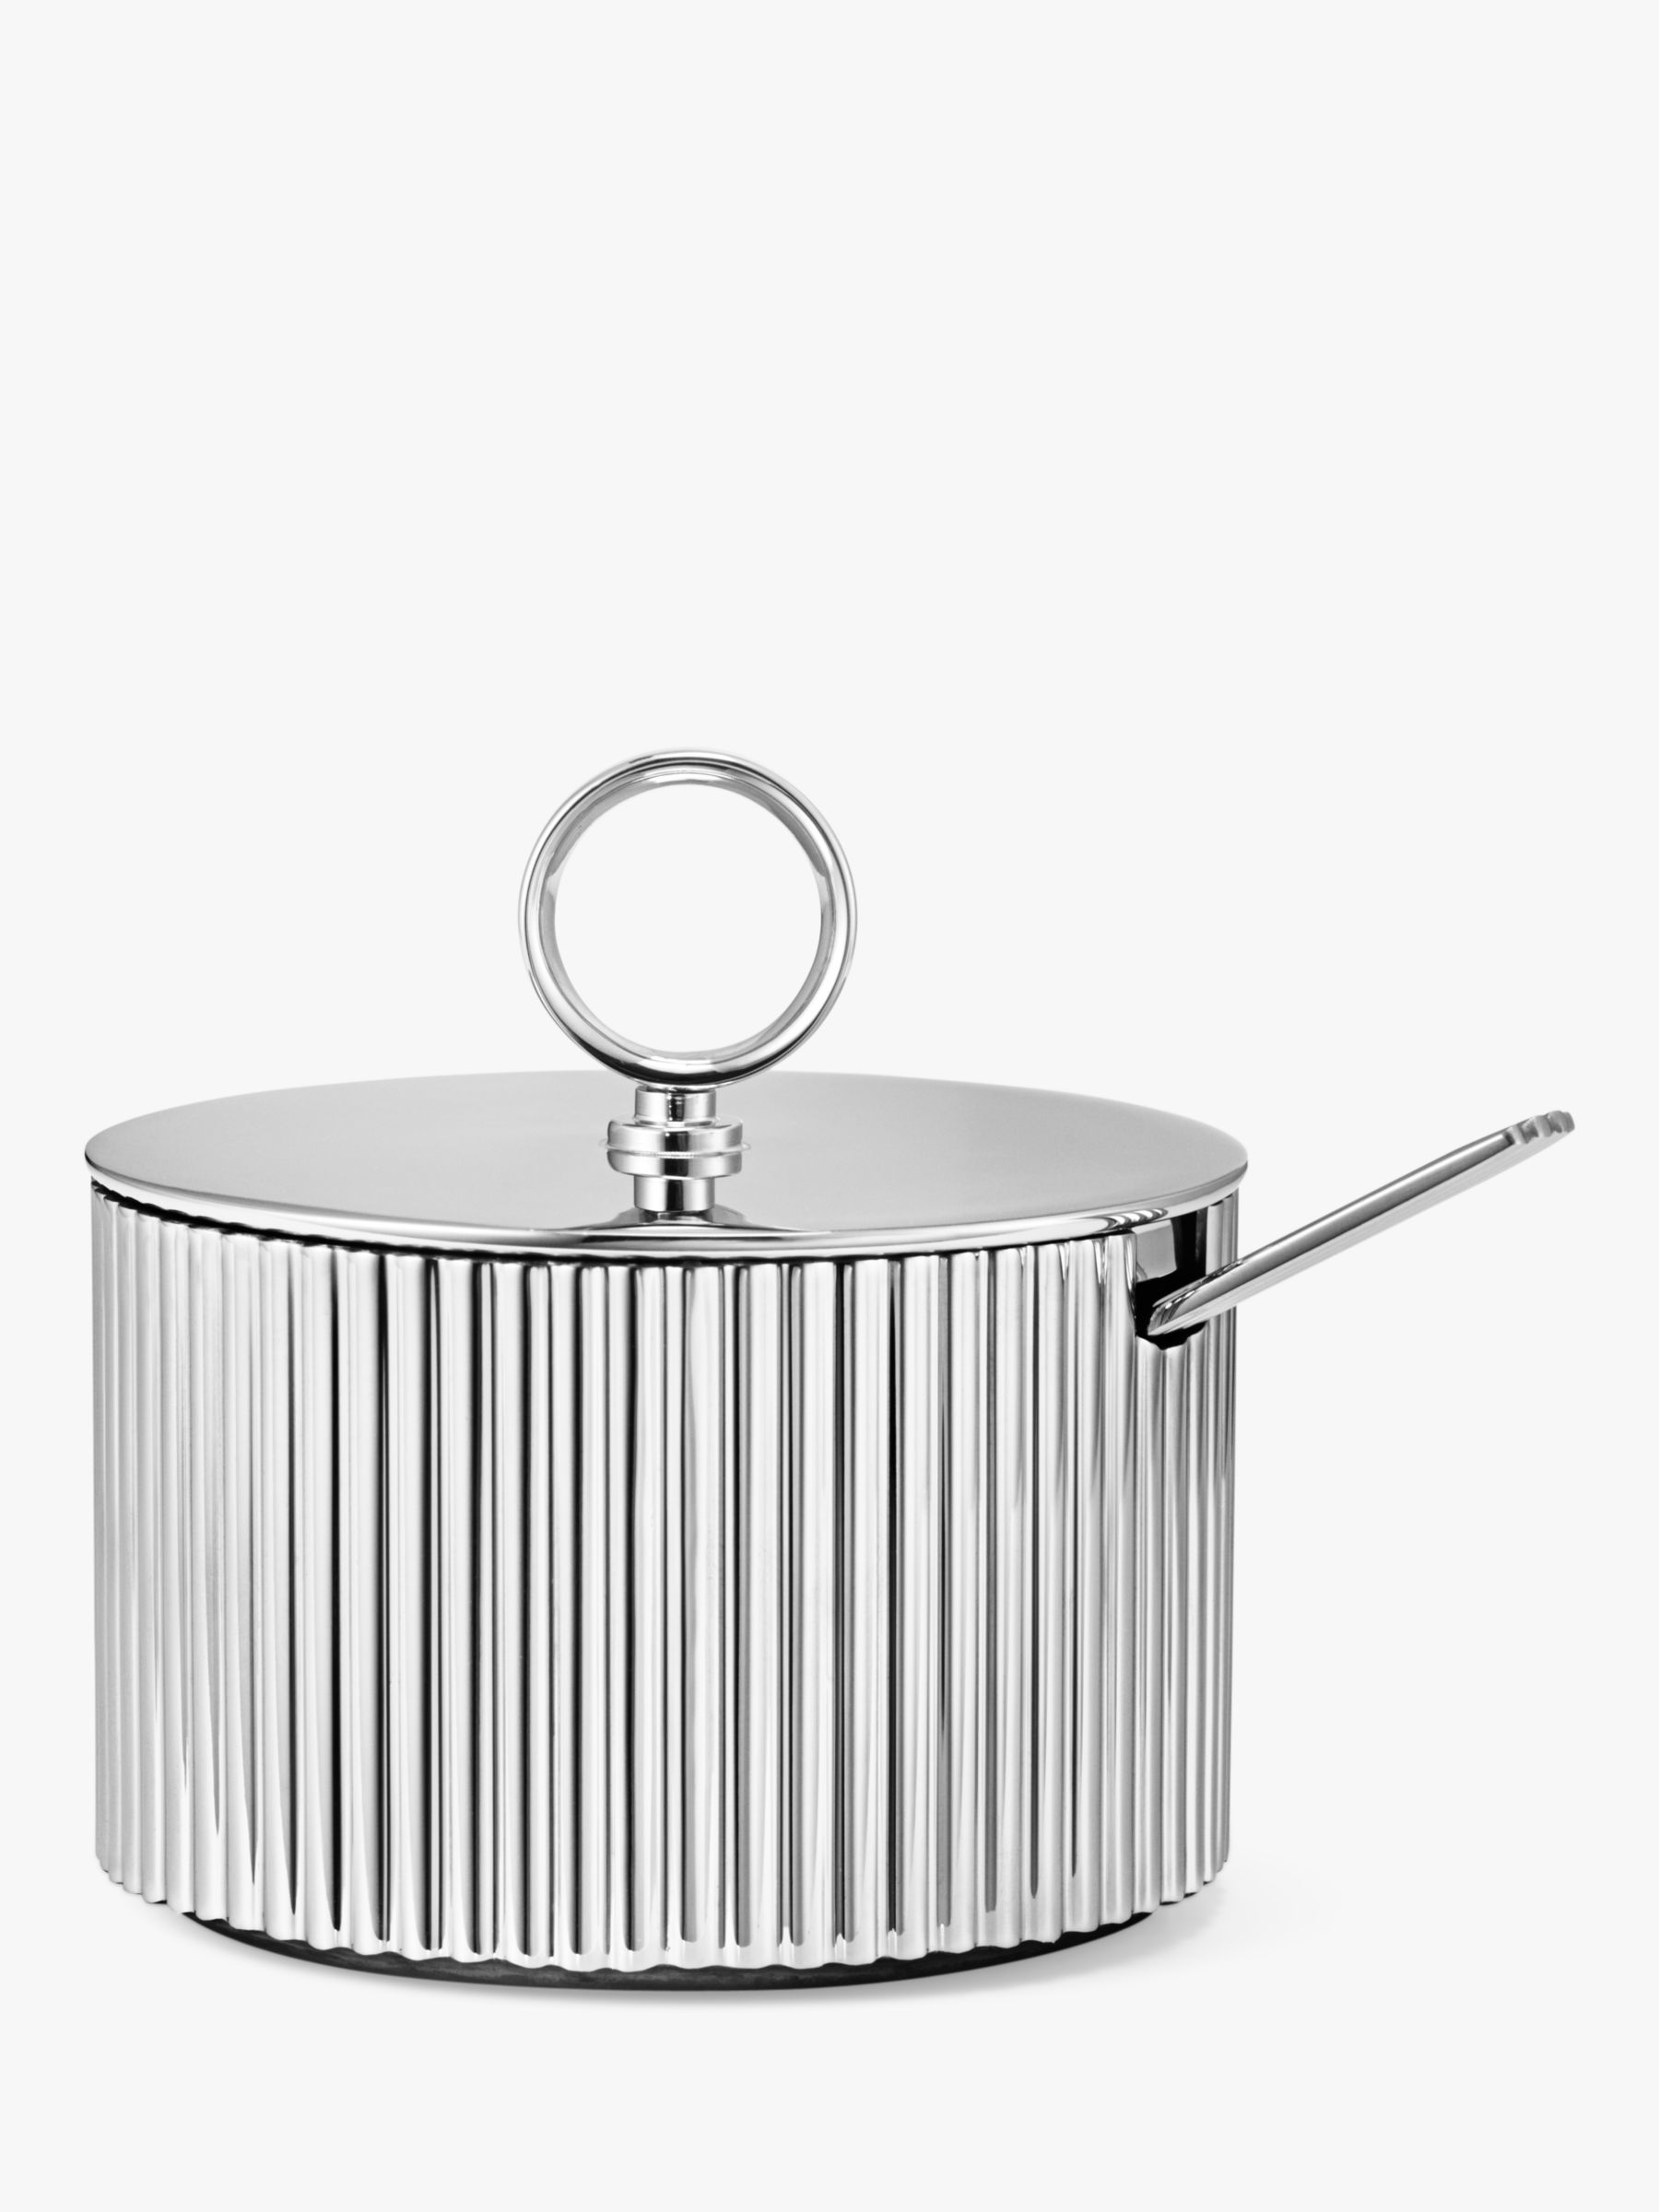 Georg Jensen Georg Jensen Bernadotte Sugar Bowl, 300ml